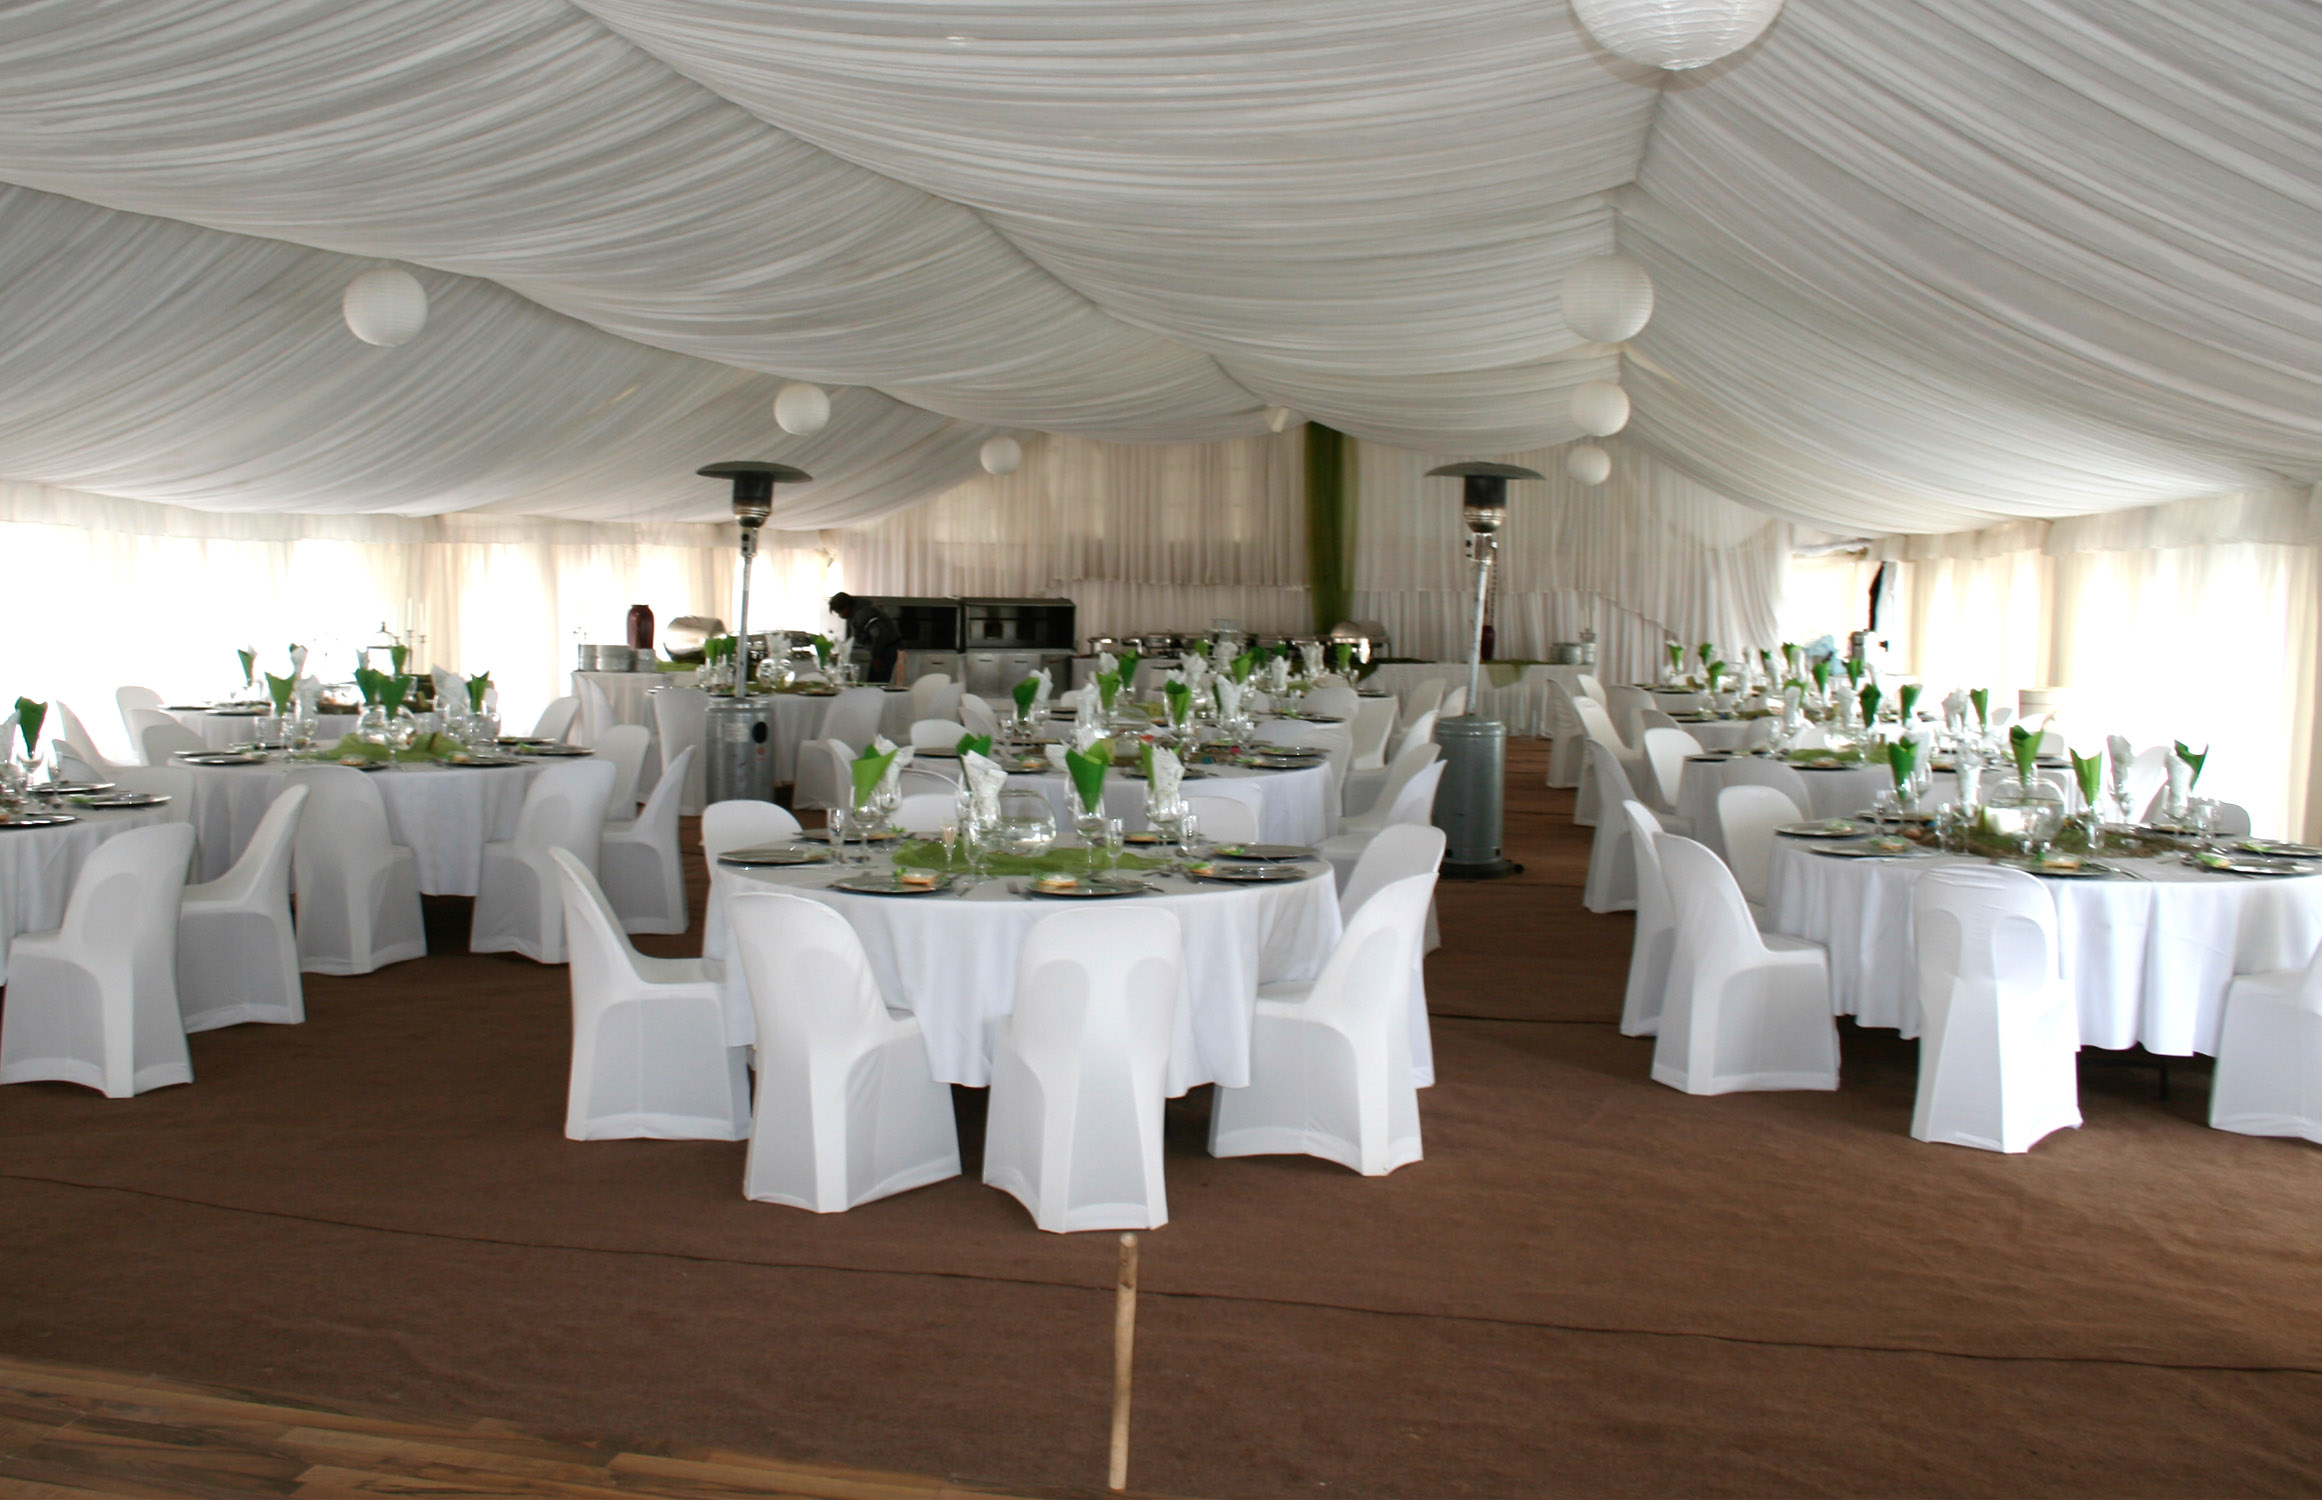 & Spot-on Catering | Marquee u0026 Tent Hire